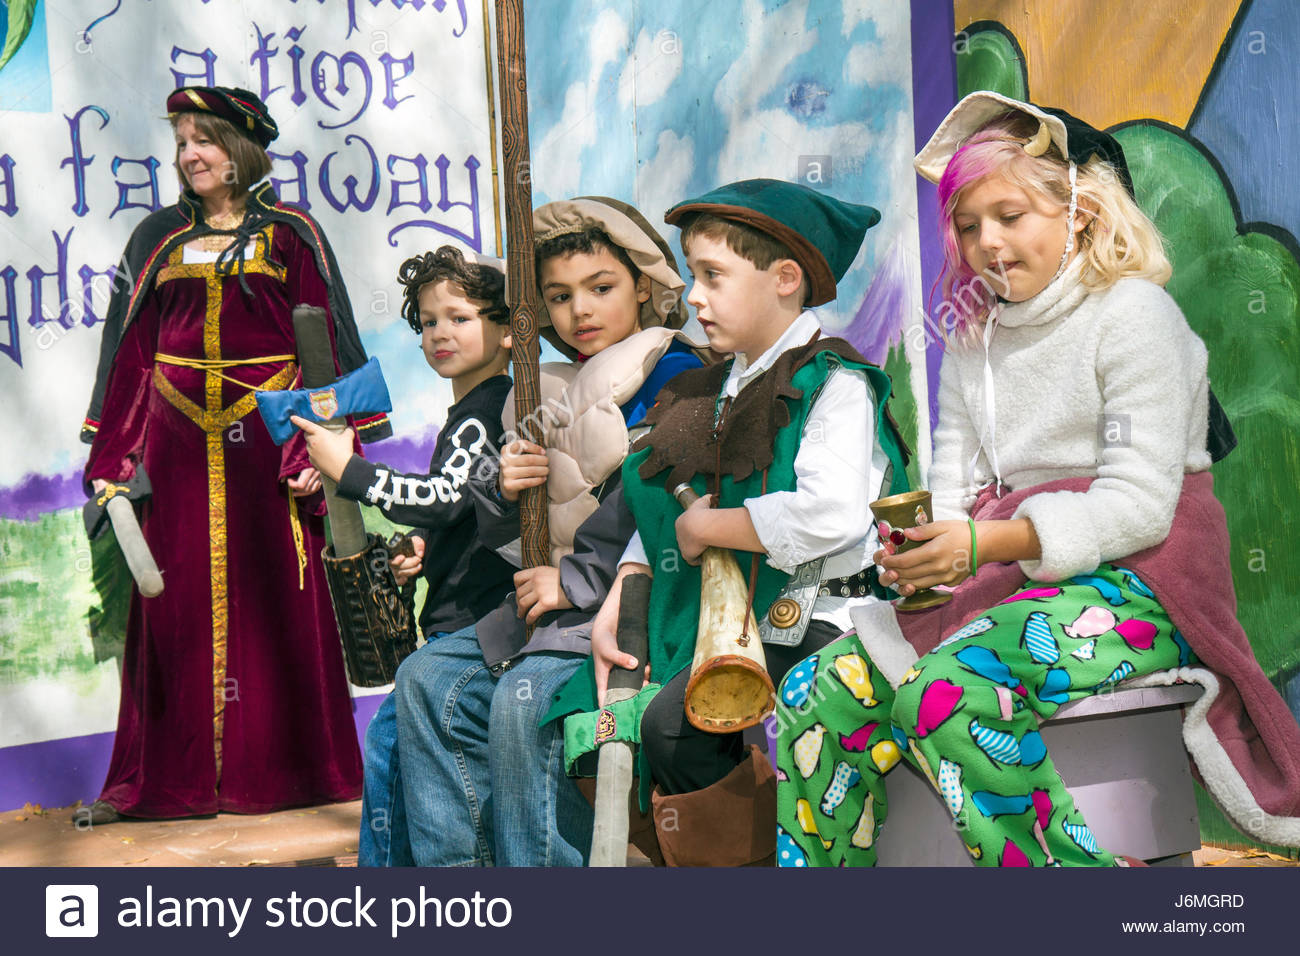 Deerfield Beach Florida Quiet Waters Park Florida Renaissance Festival stage girl boy children - Stock Image